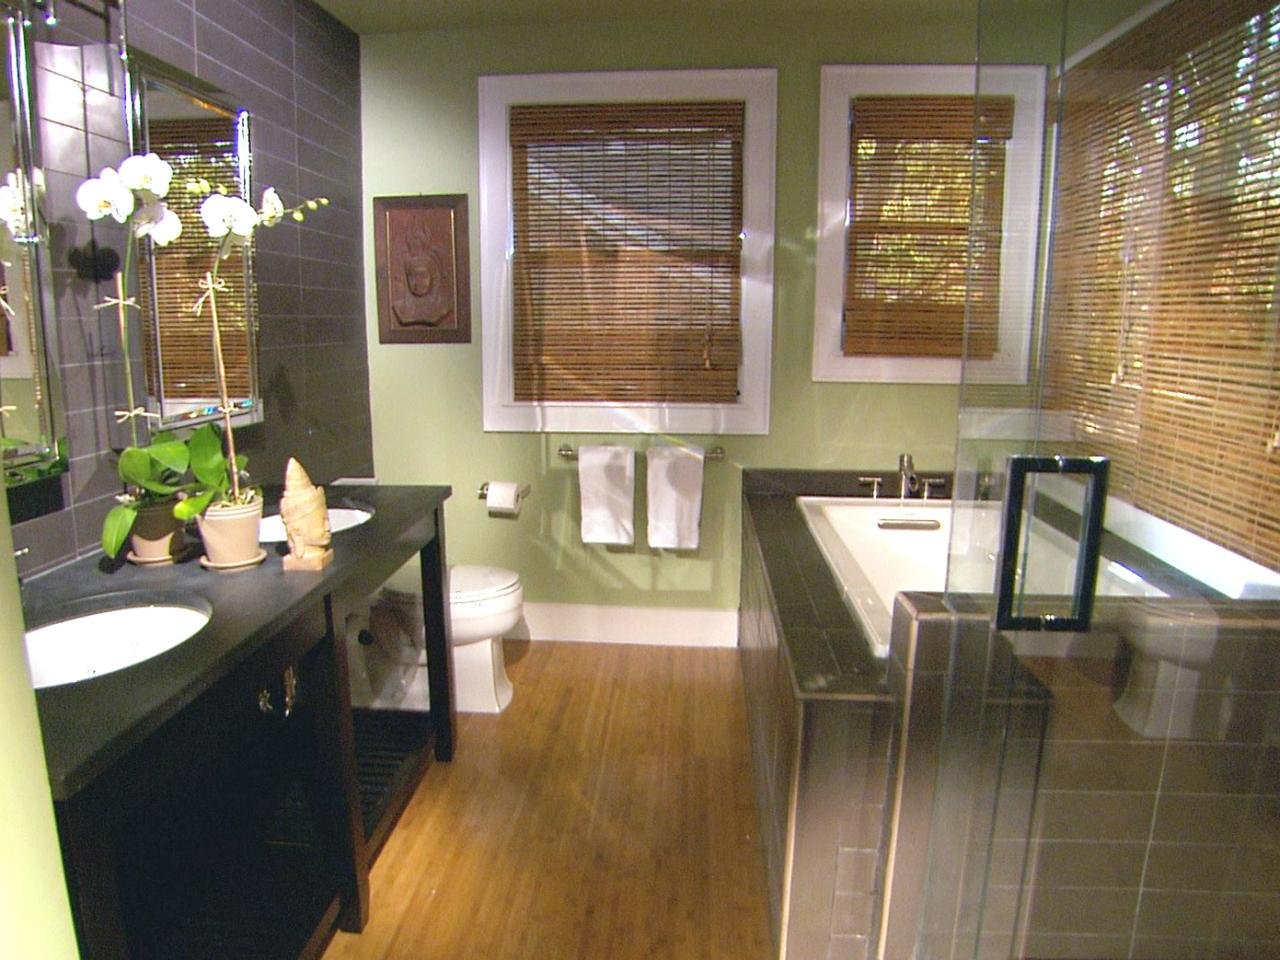 interior design ideas hgtv bathroom remodel